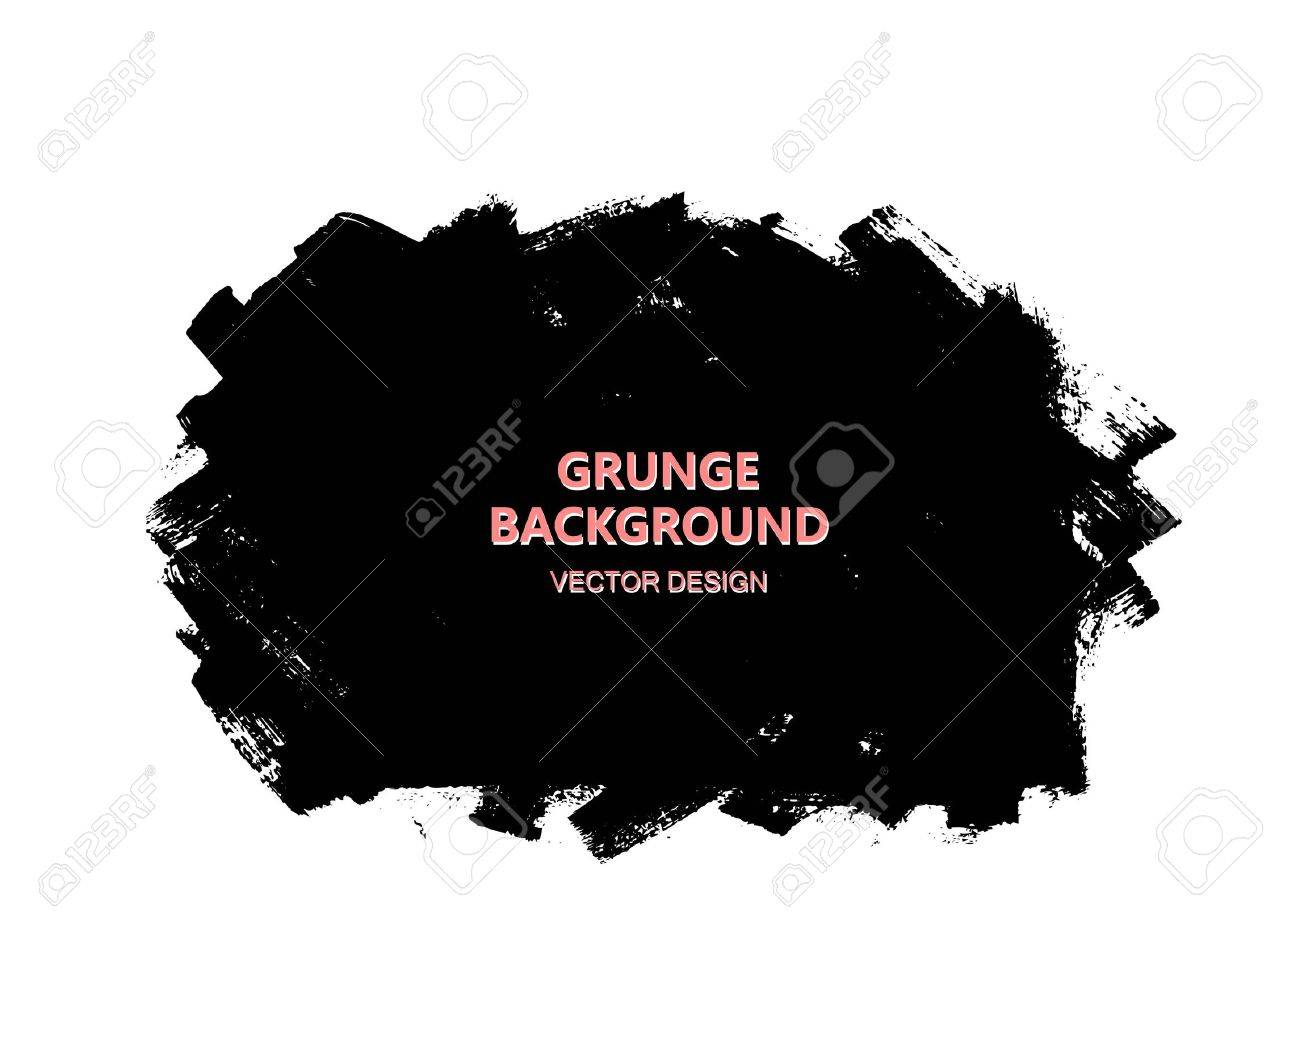 Black paint design element, place for text information, quote. Dirty grunge background. - 67323243